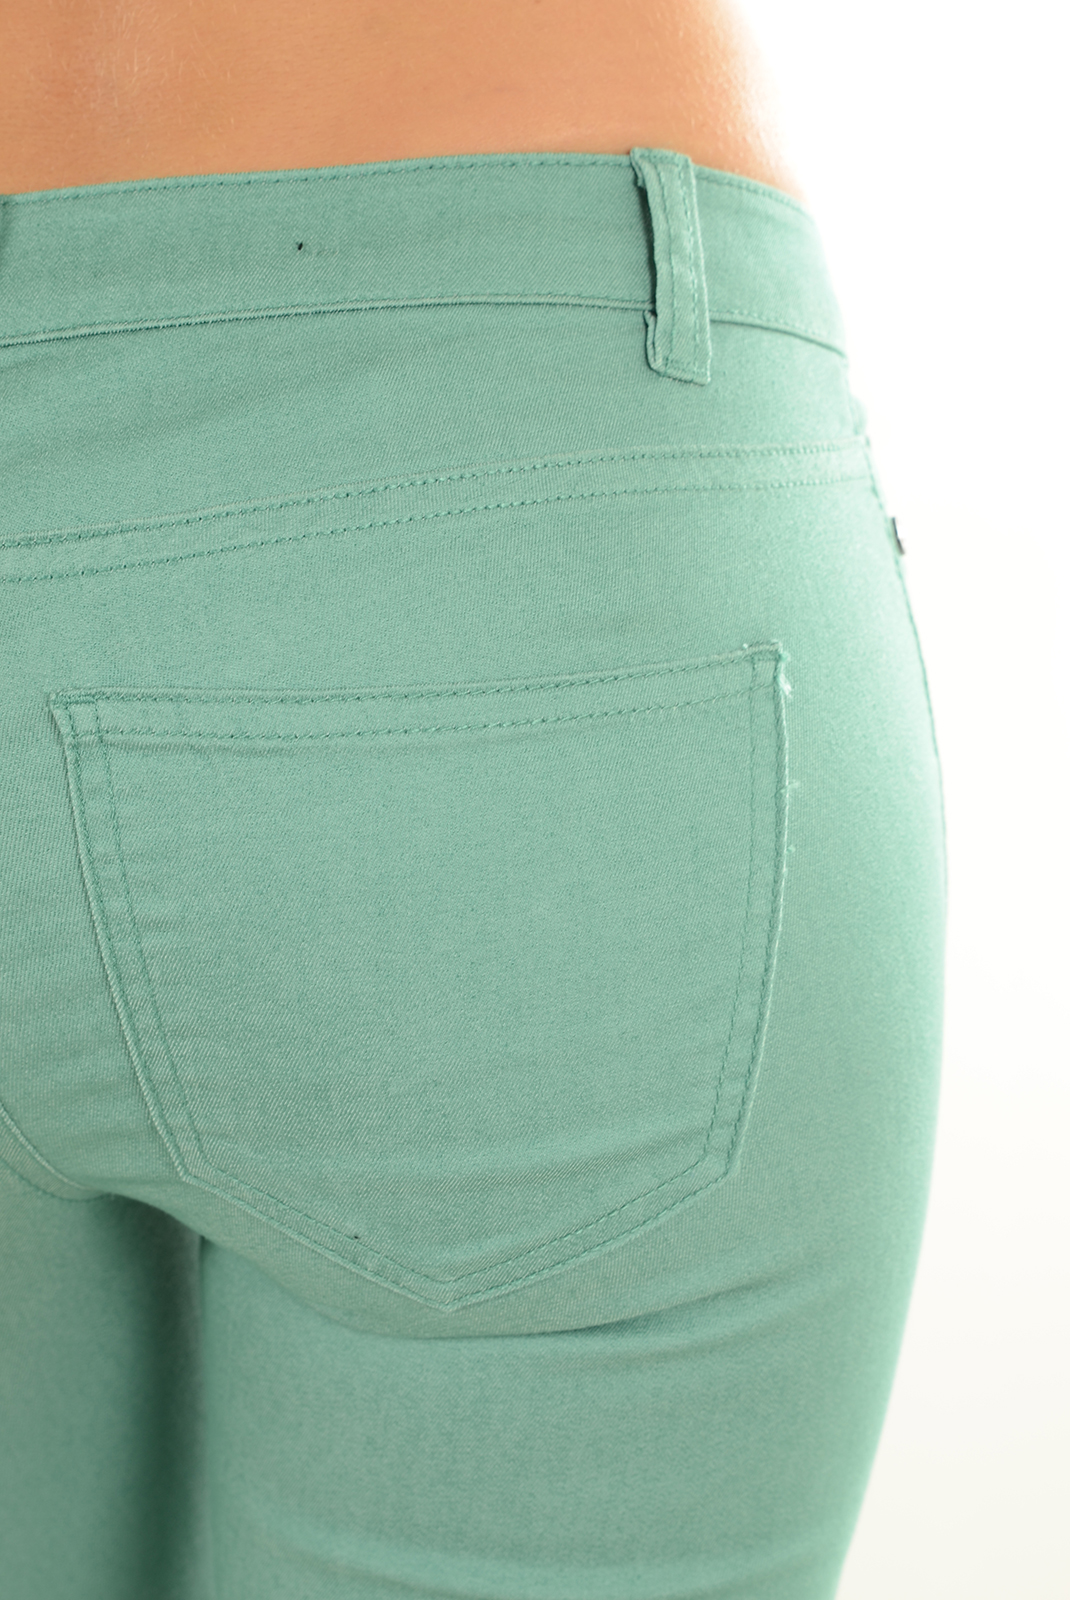 Jeans slim  Noisy May EVE LW SUPER SLIM GU207 OIL BLUE